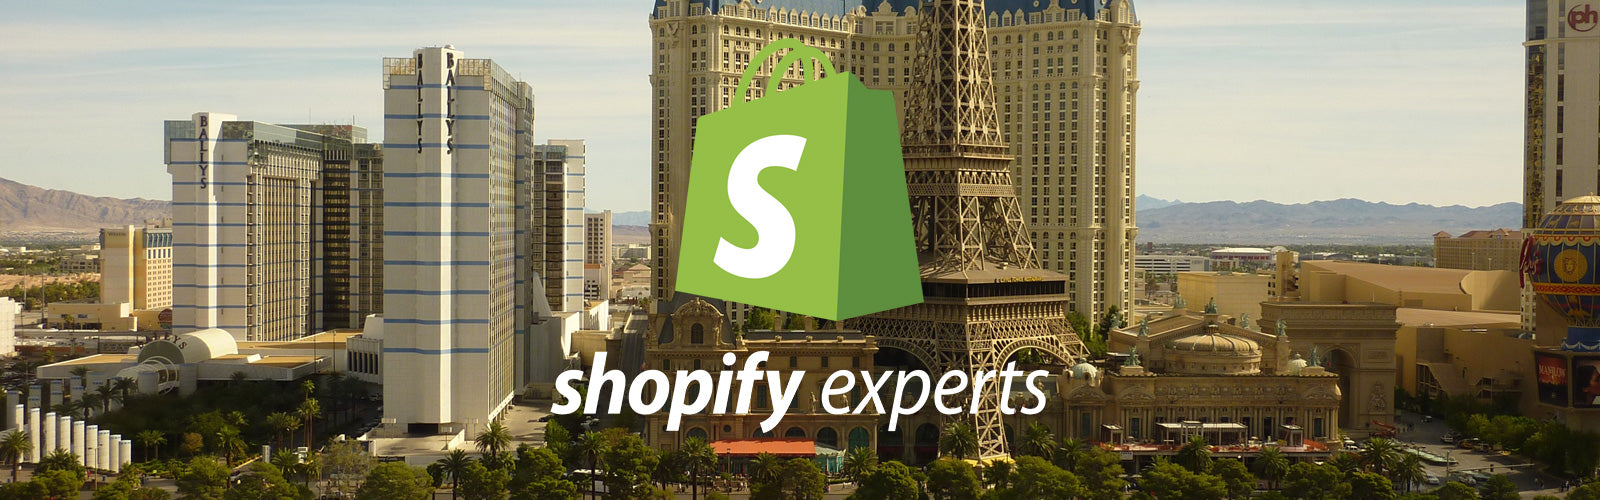 Realm - Shopify Experts Las Vegas Nevada Shopify Expert Los Angeles, Shopify Expert San Francisco